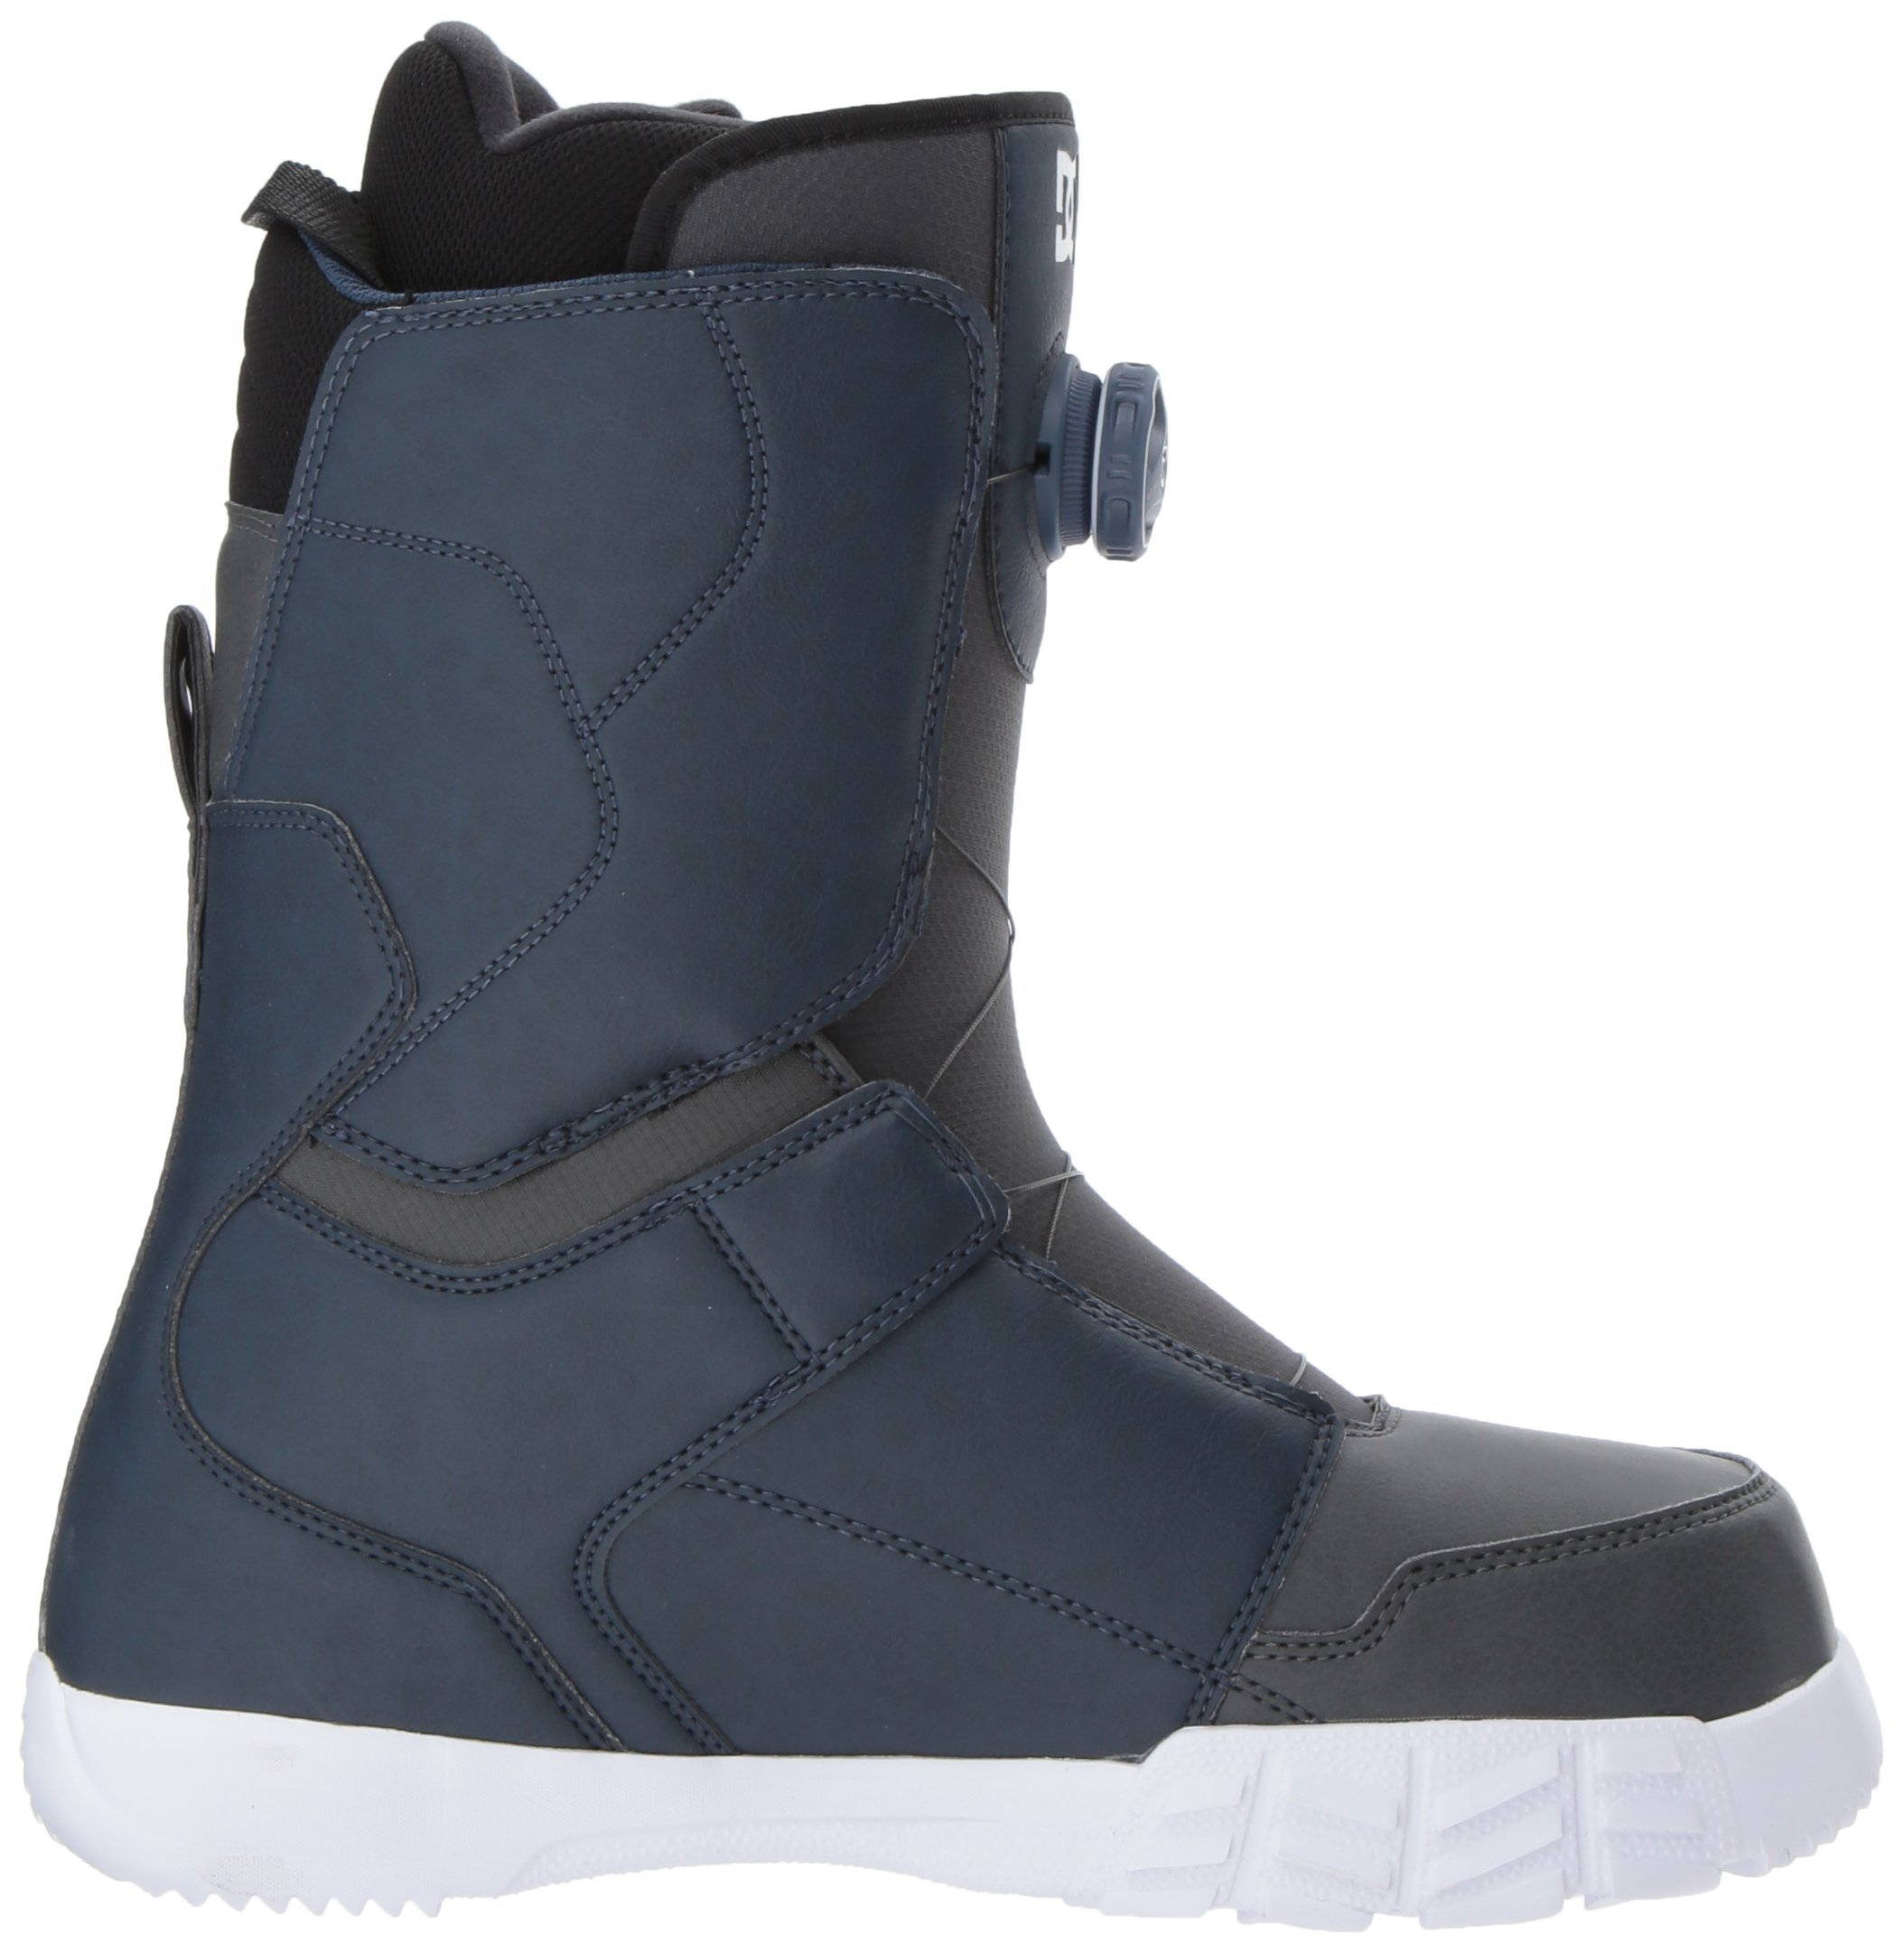 DC Men's Scout Boa Snowboard Boots, Insignia Blue, 7.5 by DC (Image #7)